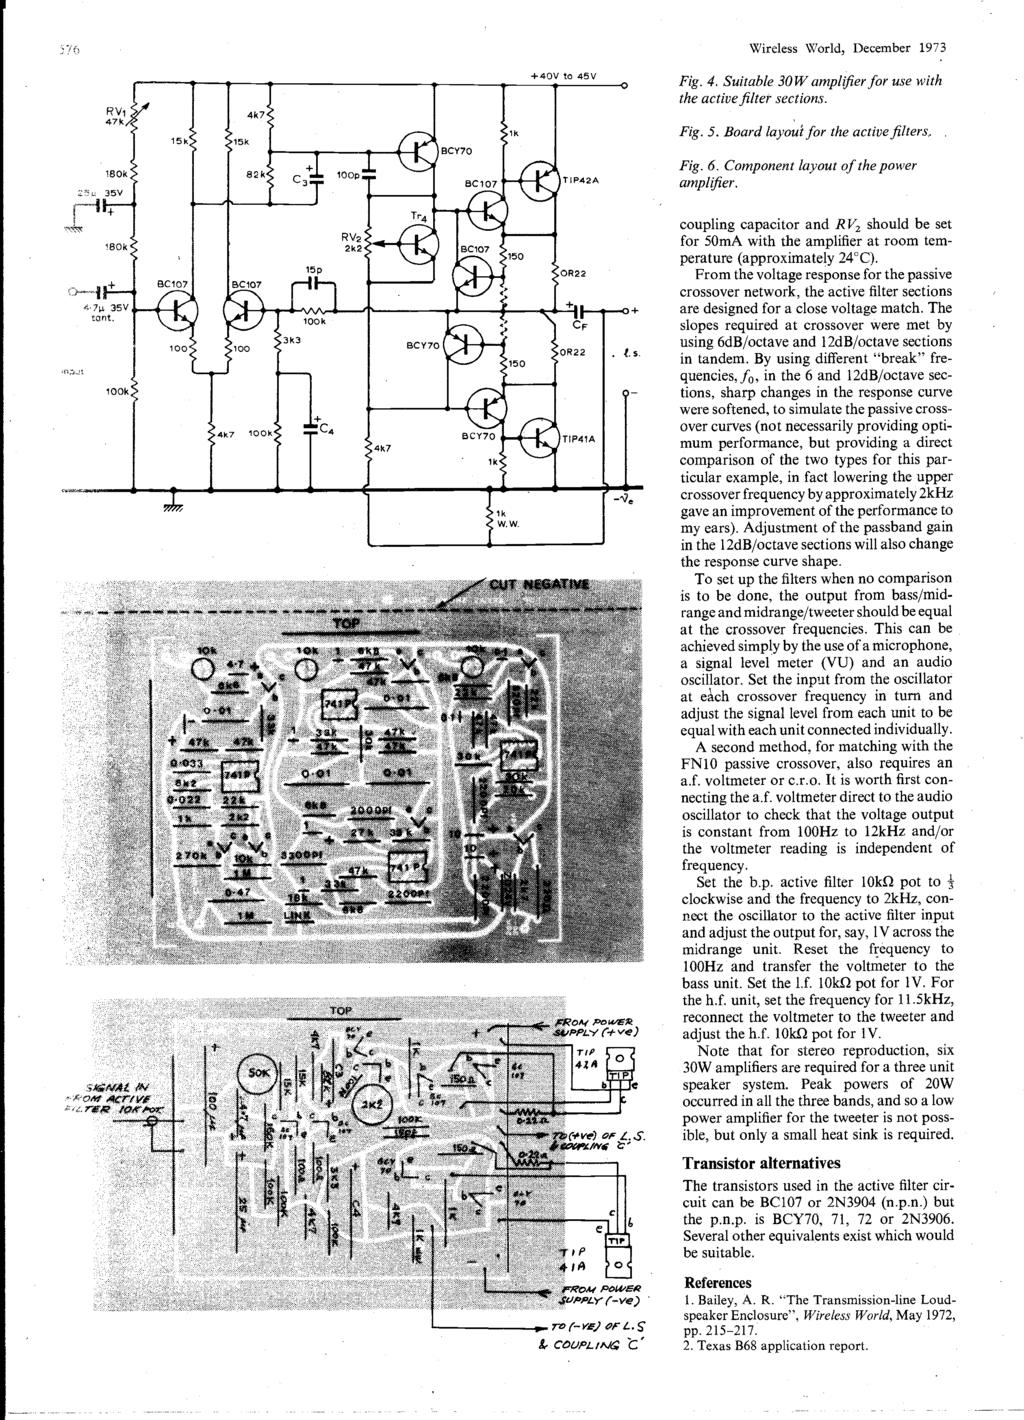 Word Ic Crossover Networks Using Opto Couplers December P Pdf Wiring Diagram Car Mono Amplifier Tda2040 Real Auto Tips 57i Wireless World 1973 R V1 47k 40v To 45v Fig